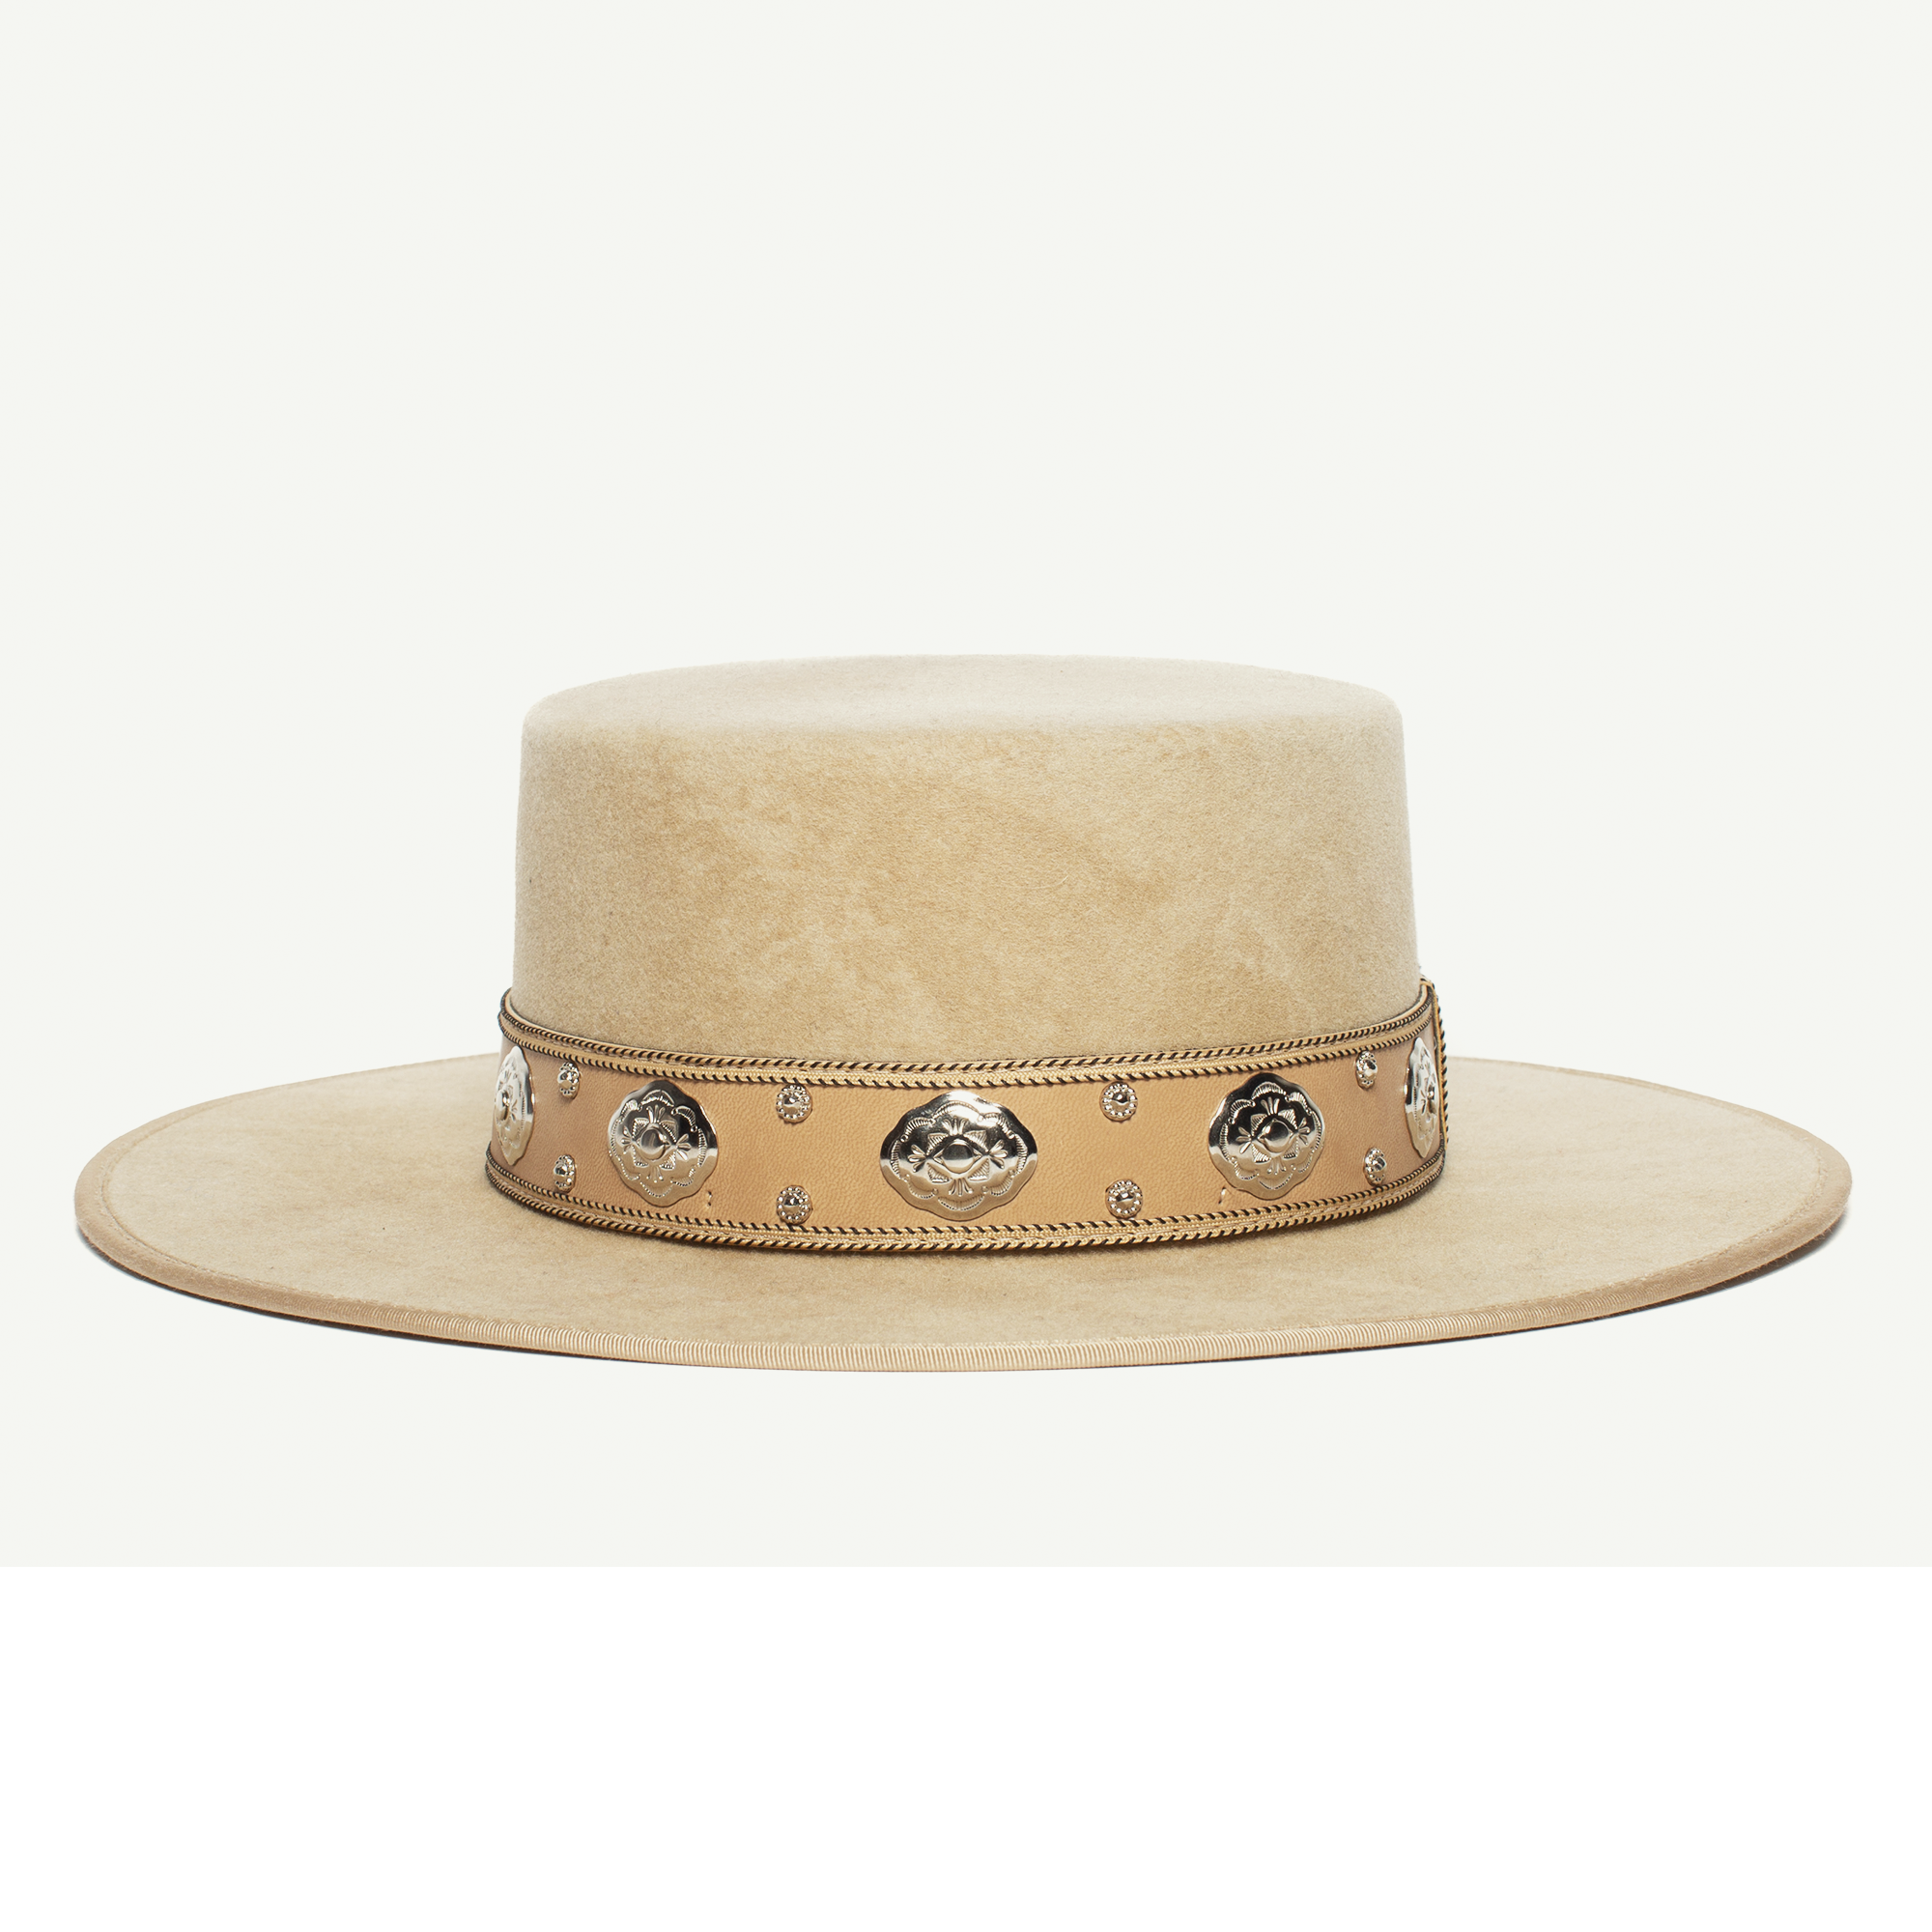 4c4c78c33 Sugar Cookie in 2019 | HAT GAME | Boater hat, Hats, Hats for men